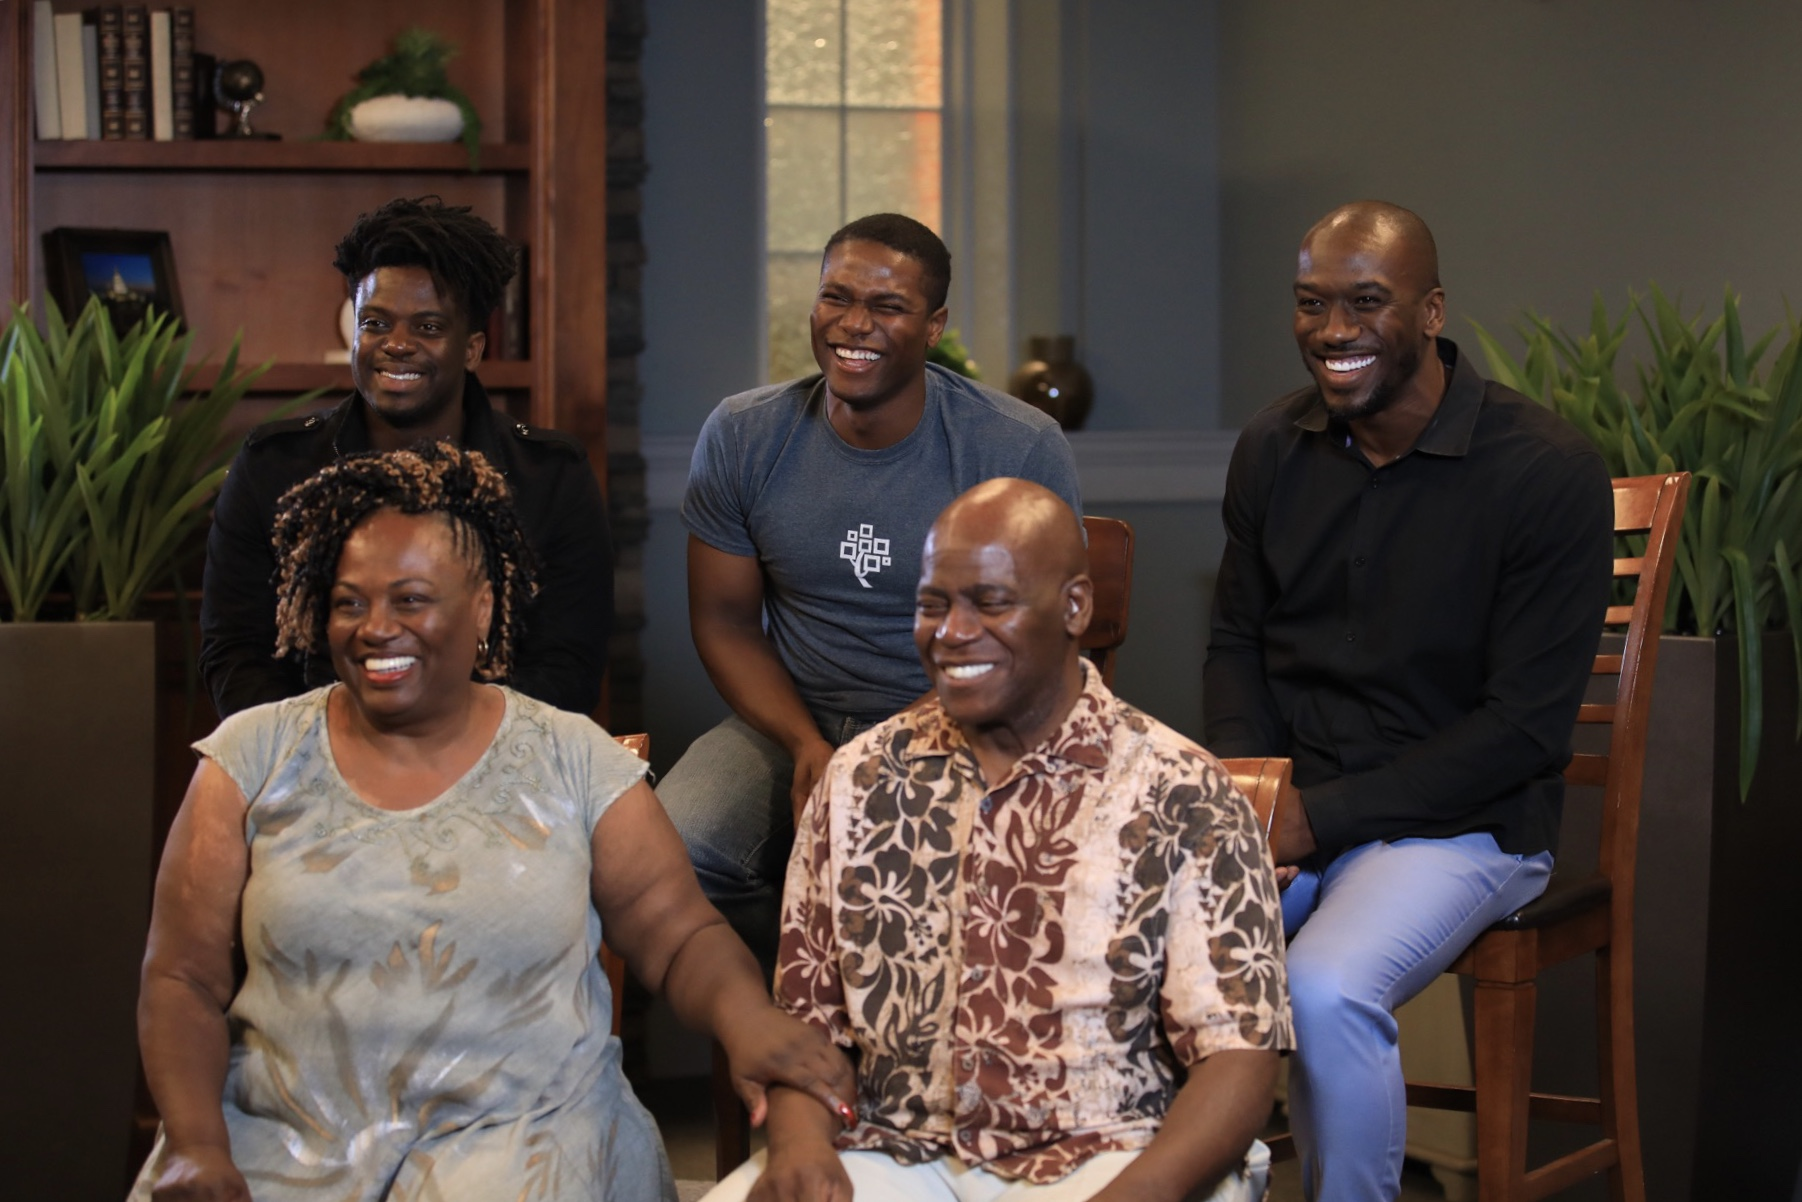 The Bonner Family consists of eight Bonner siblings and their parents, all talented vocalists, who perform and record together.